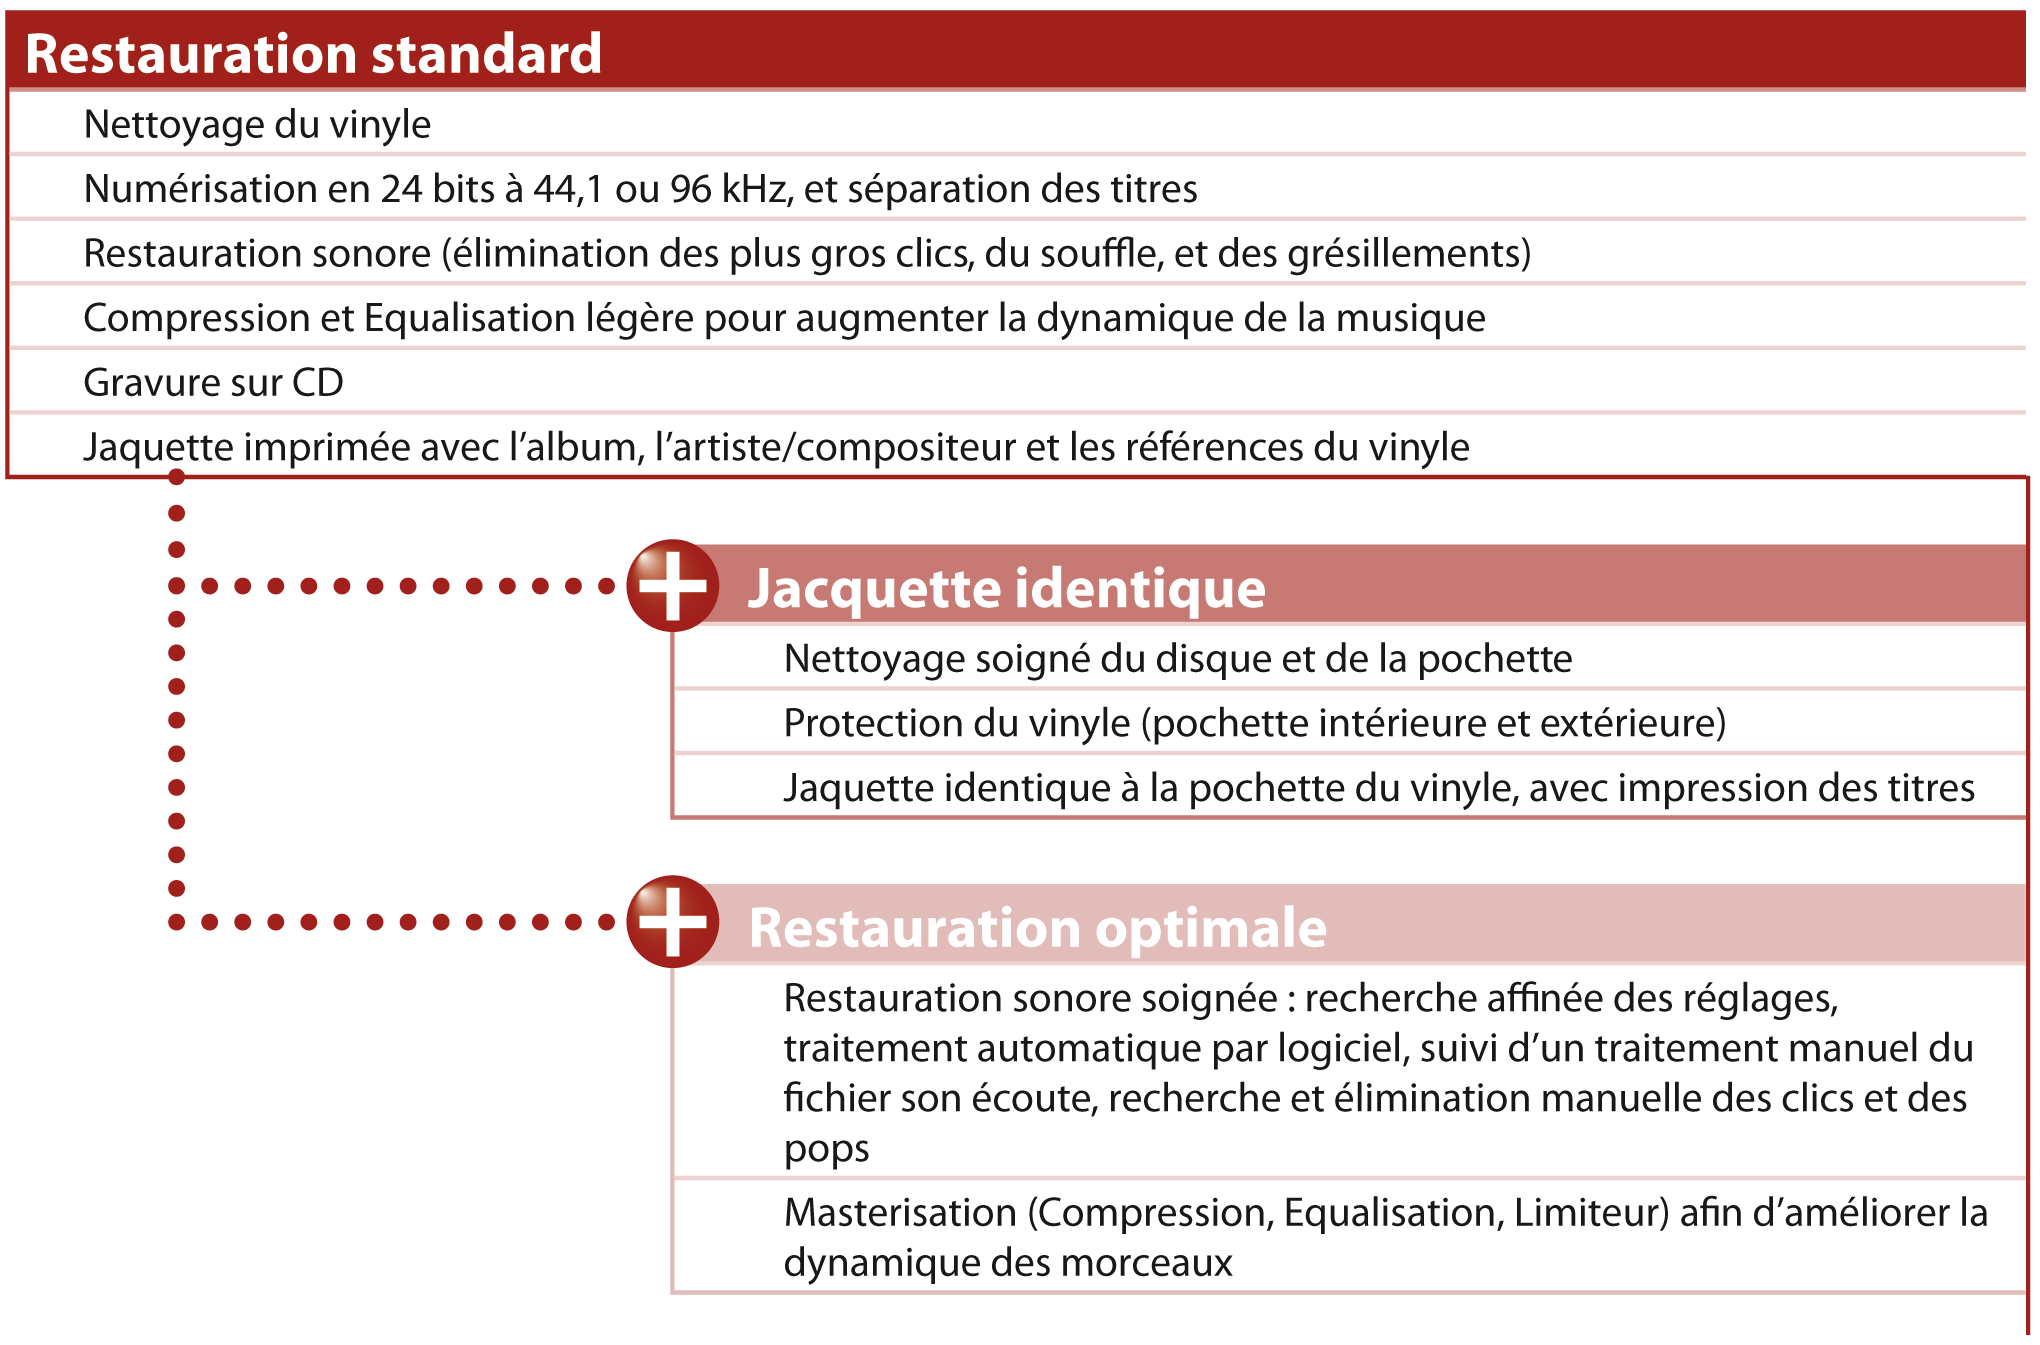 restauration standard, restauration optimale avec masterisation et traitement manuel du son